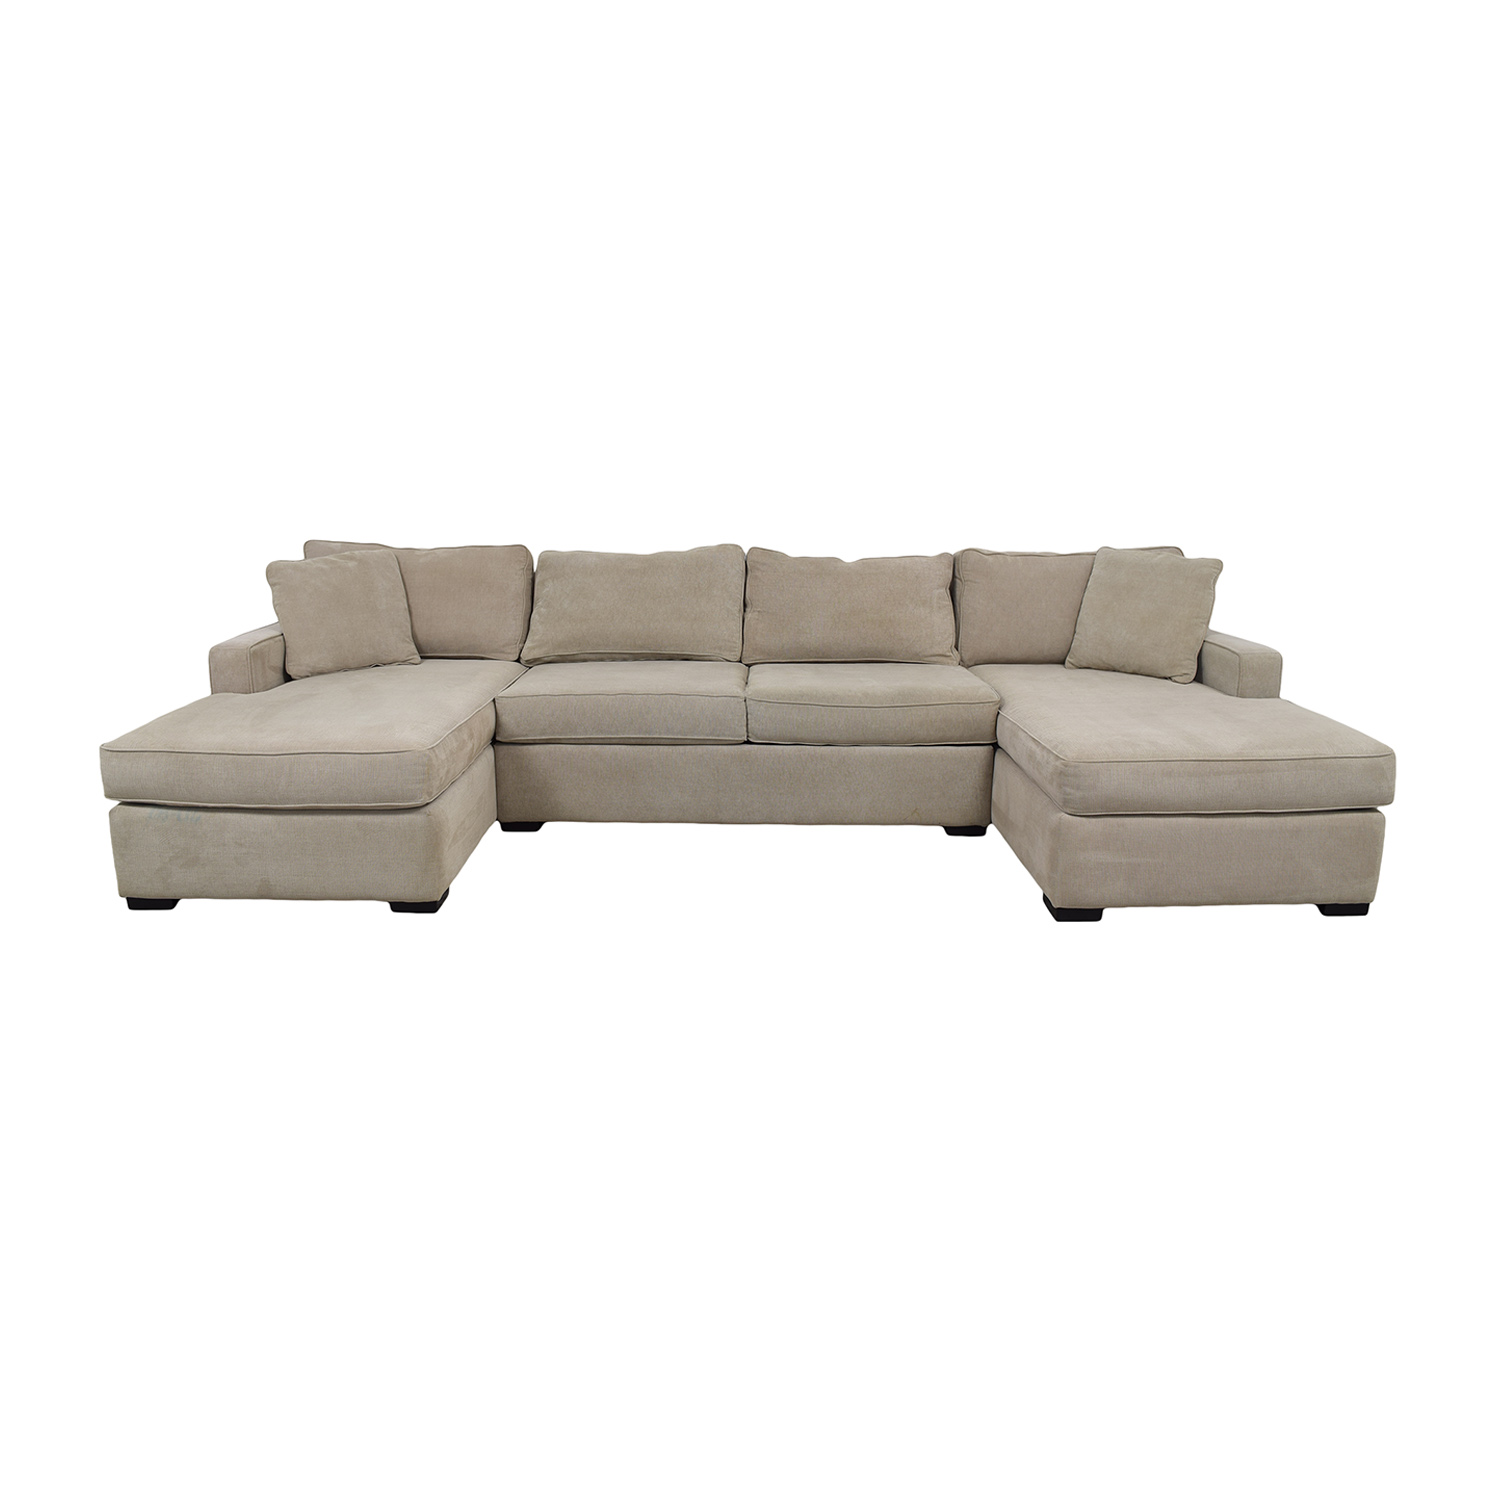 54 off macy s macy s beige double chaise sectional sofas